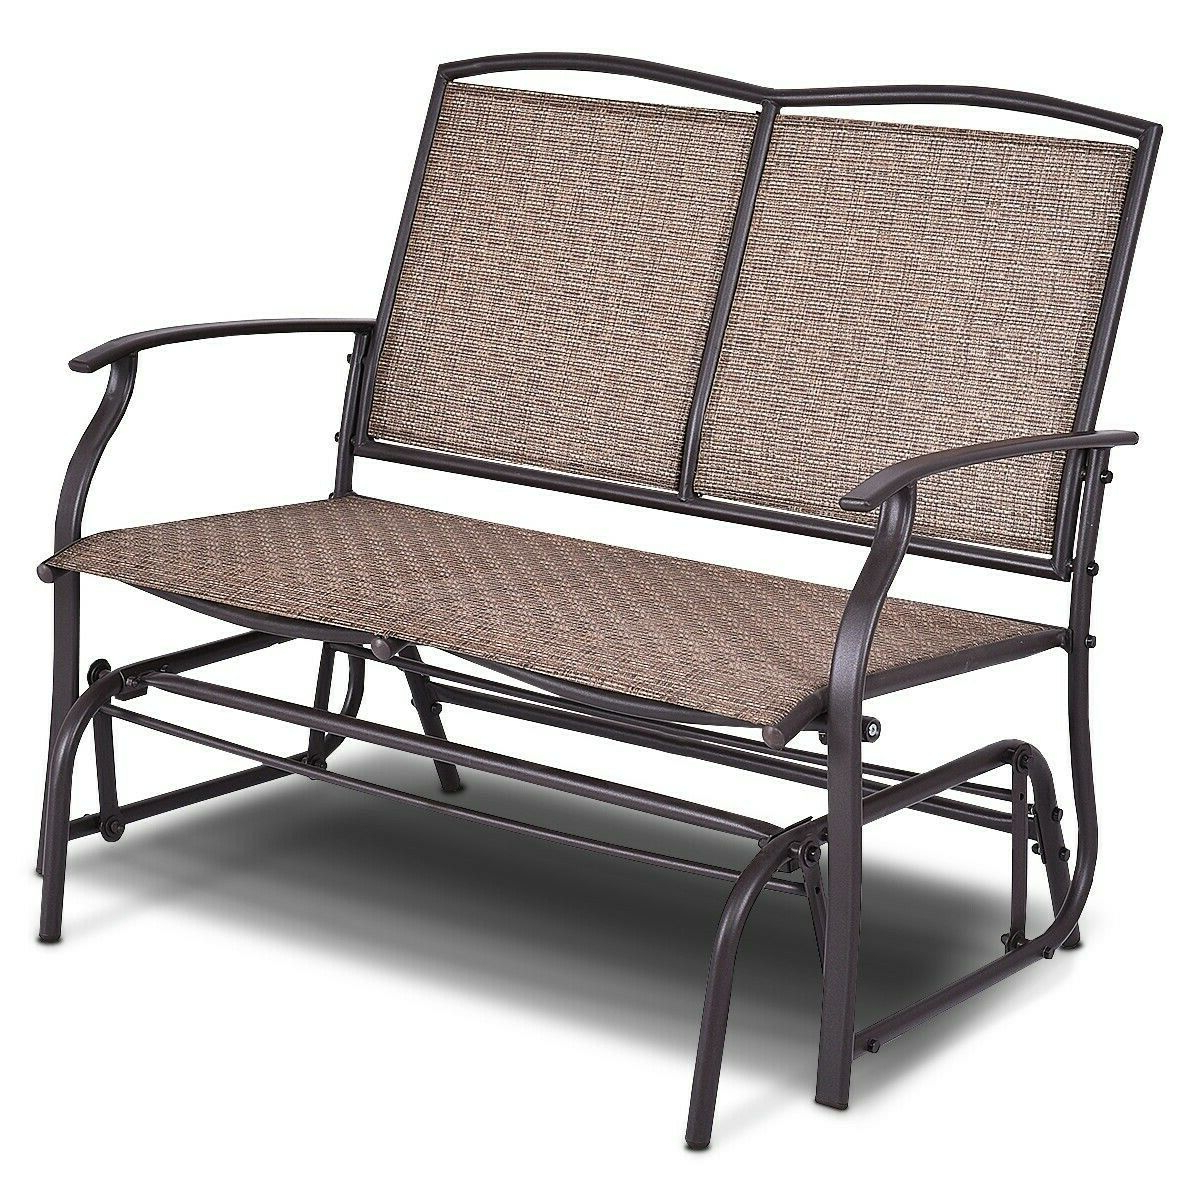 Widely Used Outdoor Patio Swing Glider Bench Chair S With Regard To Double 2 Person Outdoor Patio Porch Swing Glider Loveseat Bench Rocking Chair (View 8 of 25)